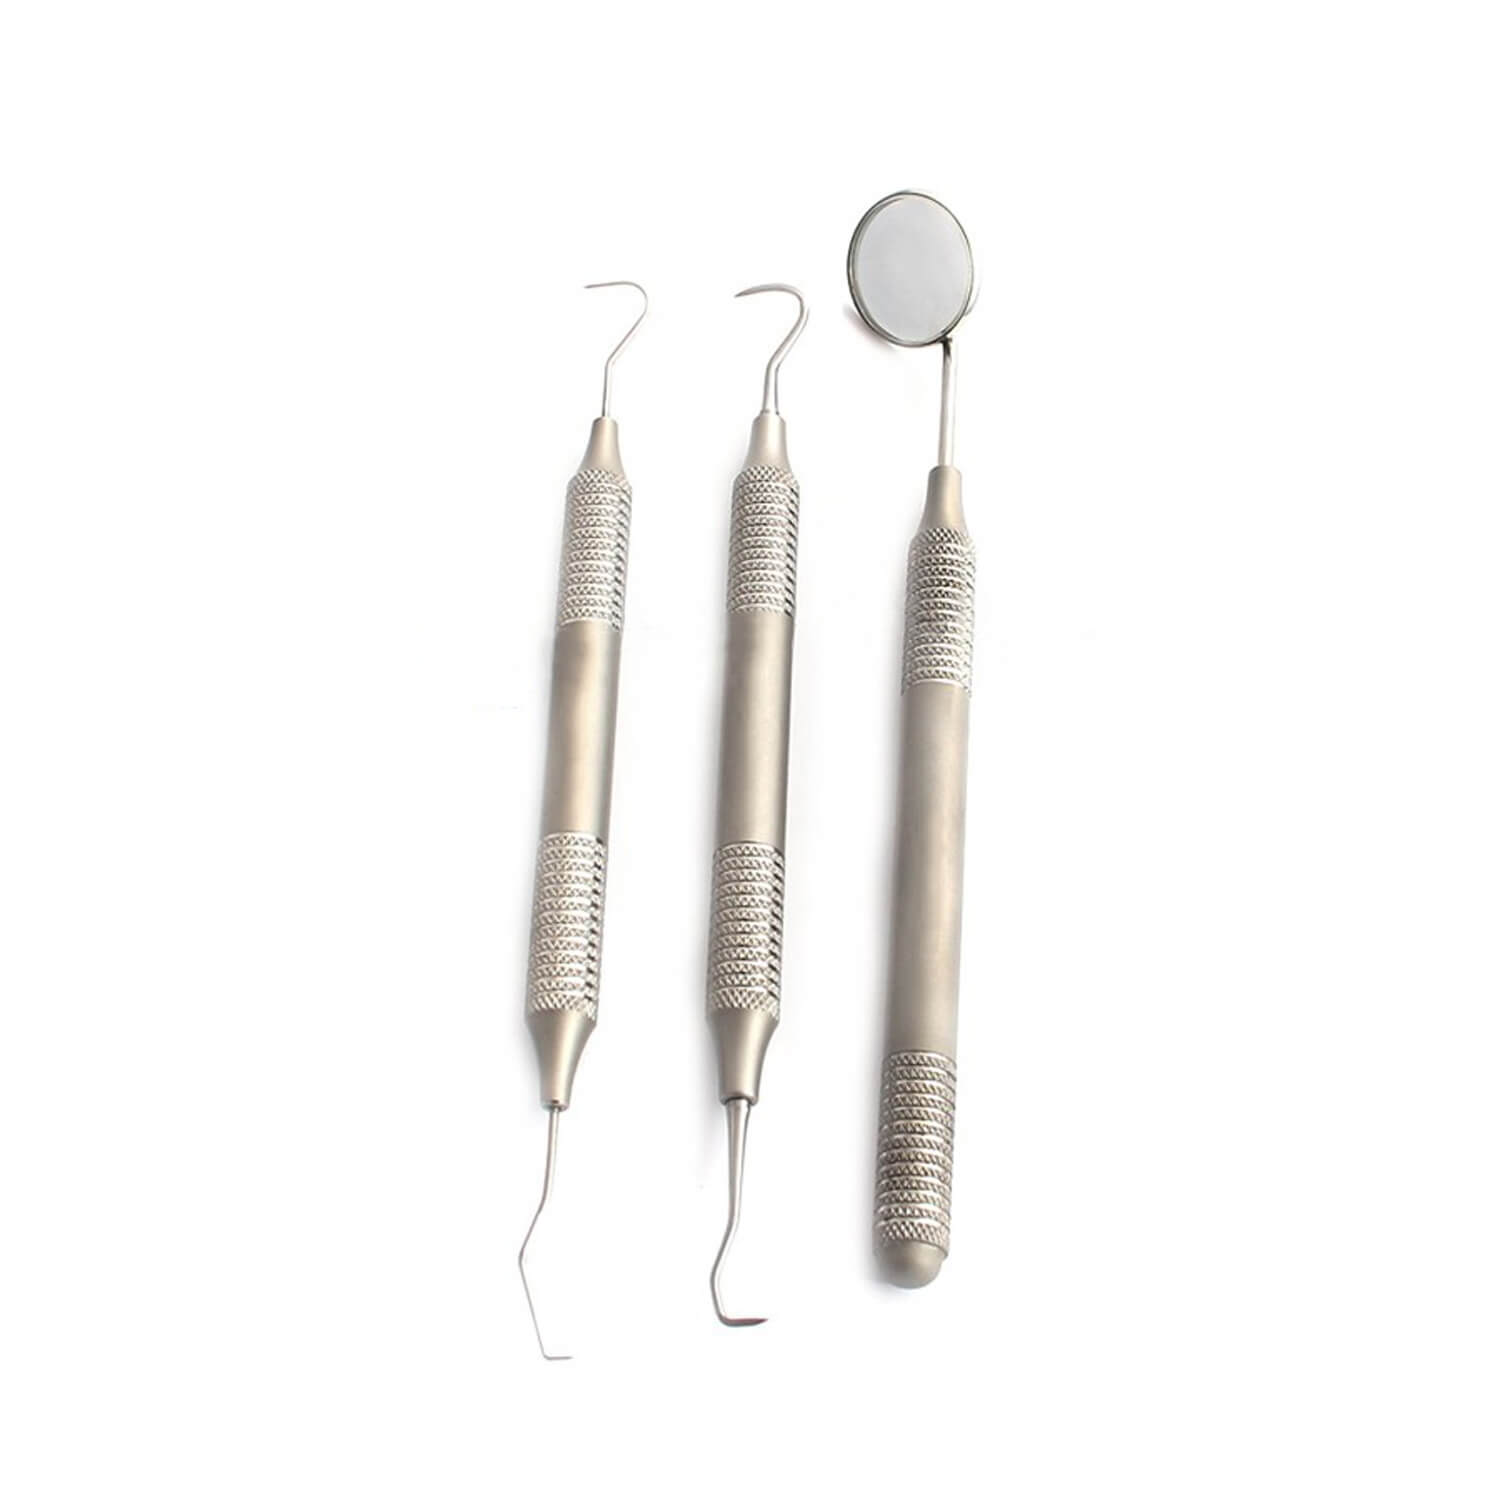 Dental Tarter Scraper And Remover Set Stainless Steel With Free Protective Packing